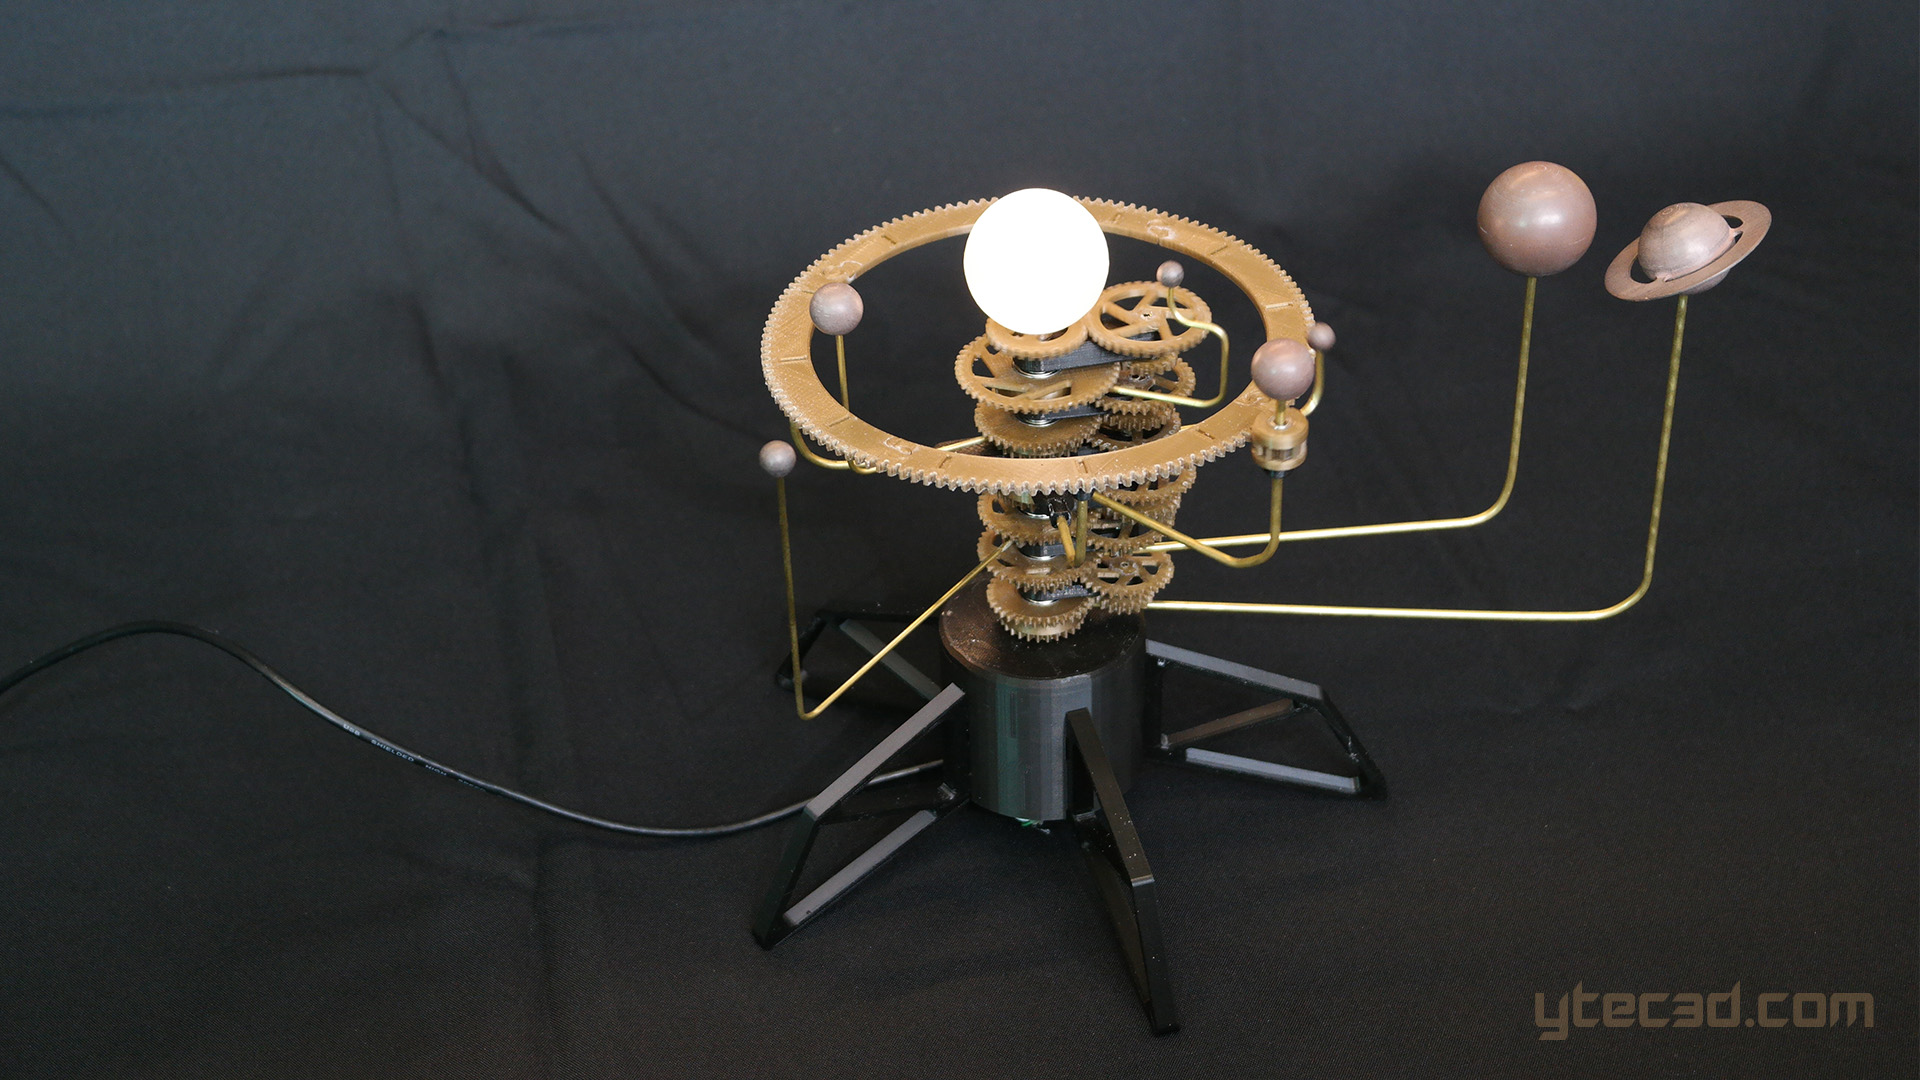 solar system orrery - photo #22